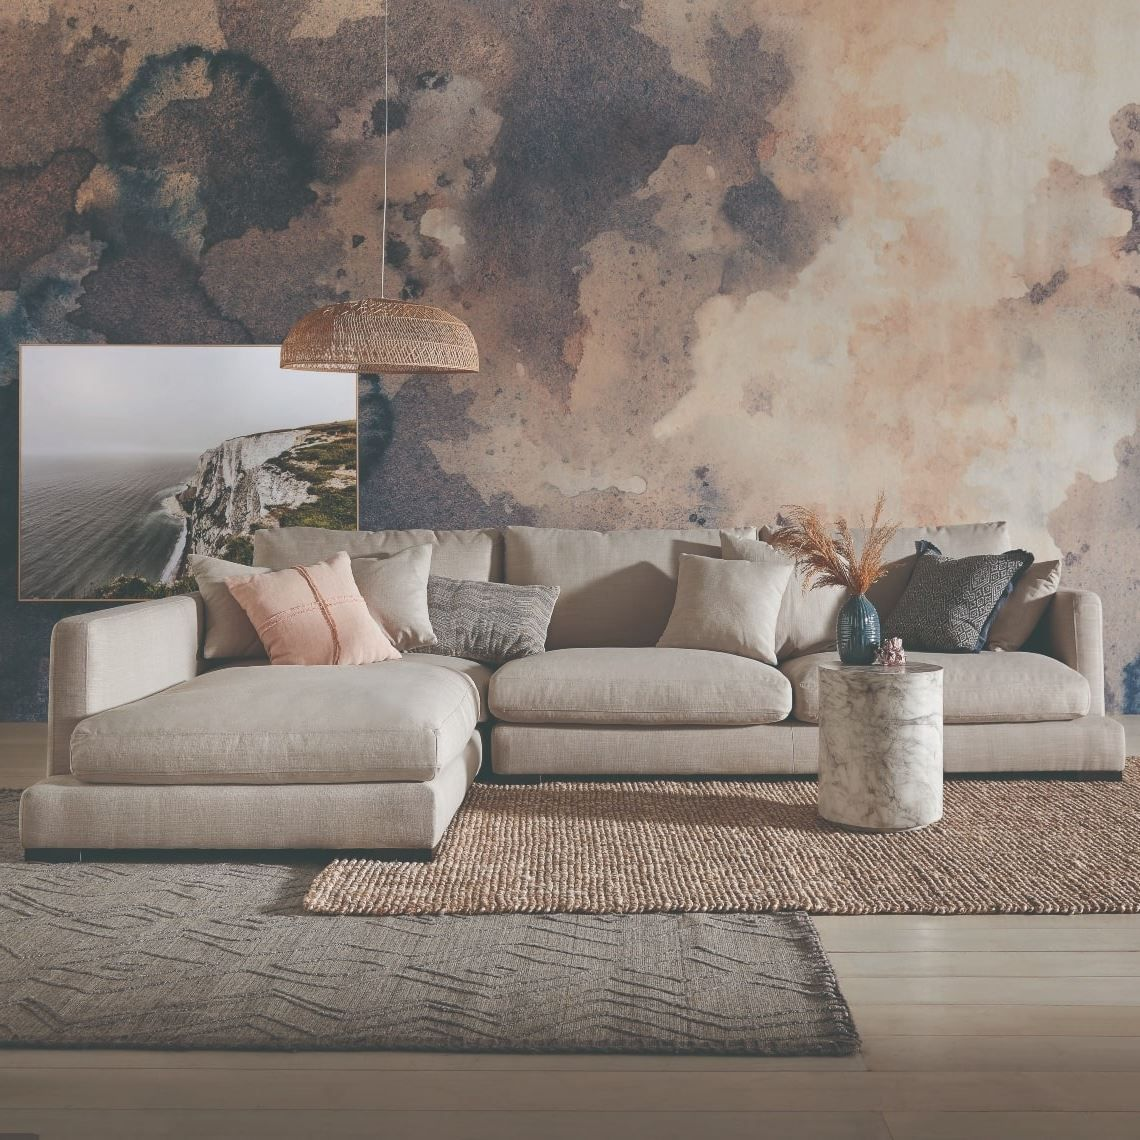 Hamilton 3 Seat Fabric Modular Sofa With Left Terminal In 2020 Modular Sofa Freedom Furniture Leather Modular Sofa